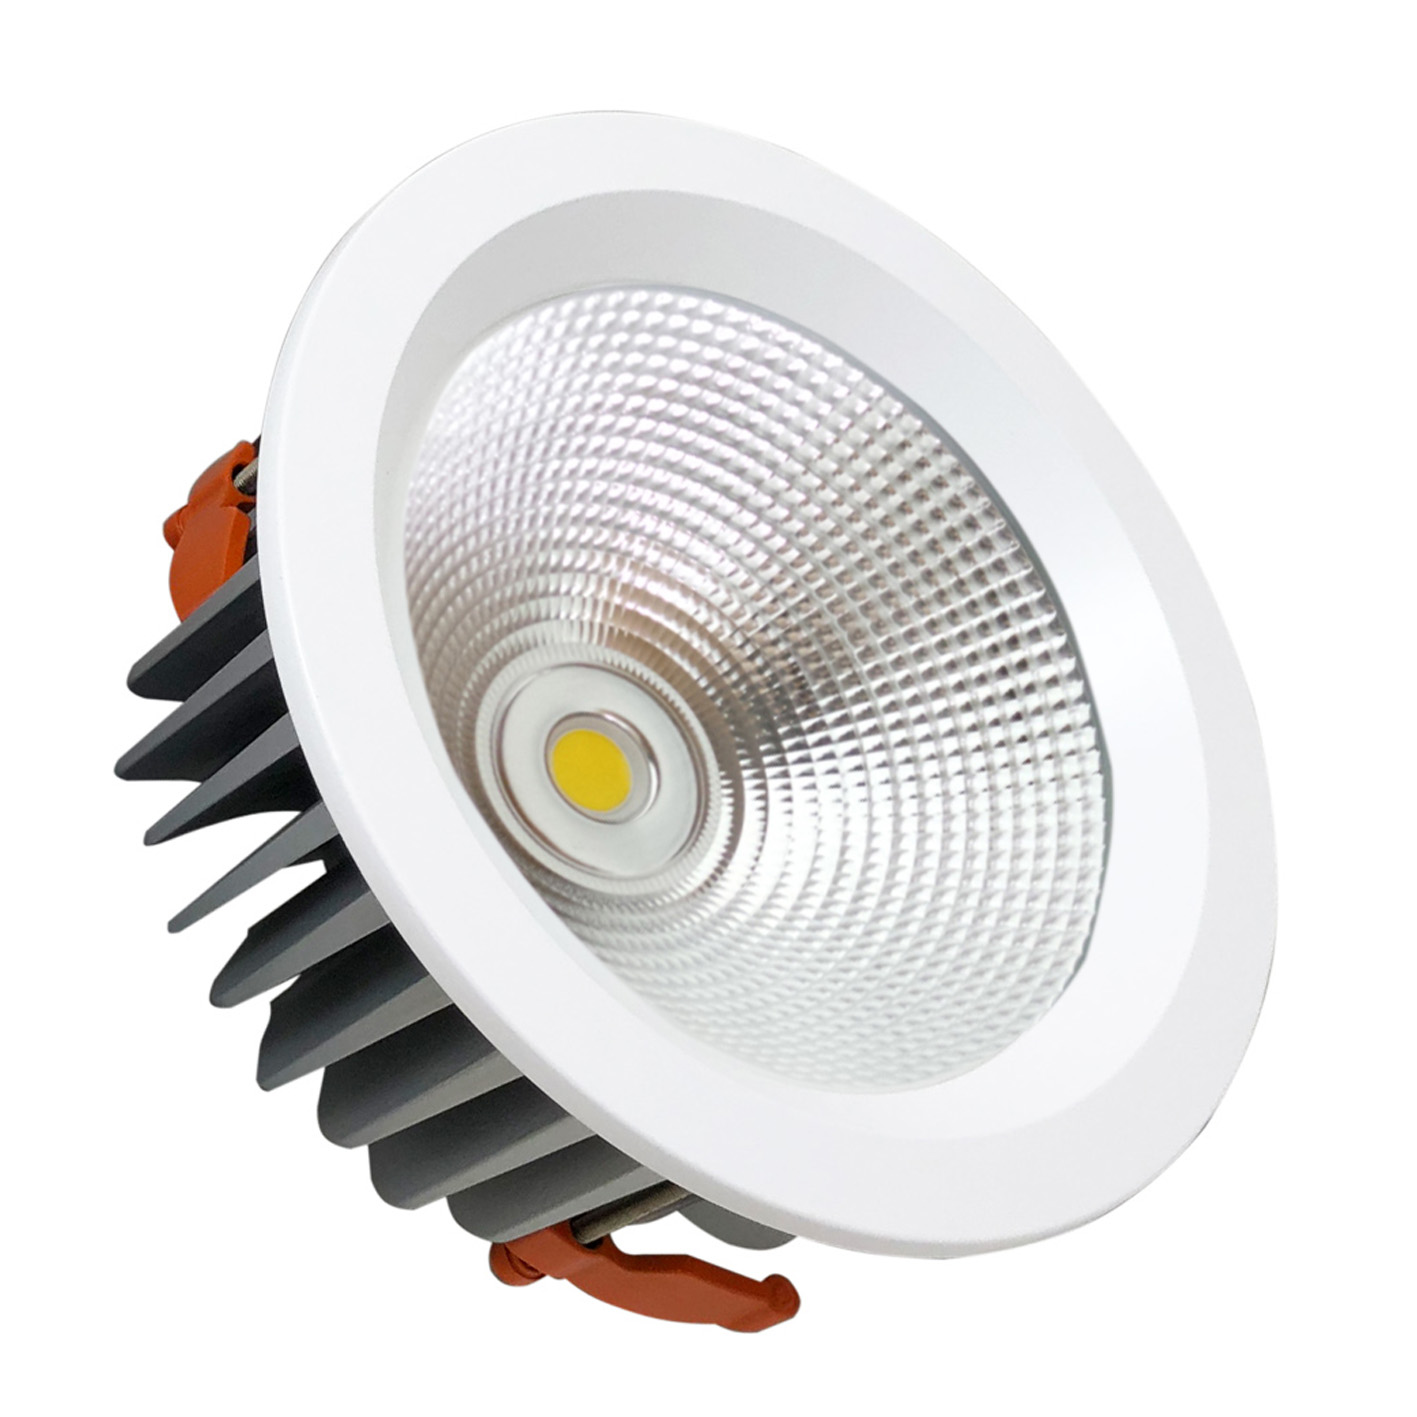 Faro LED 40W da incasso Cob Potente Bright led incasso Silamp faretto 230mm